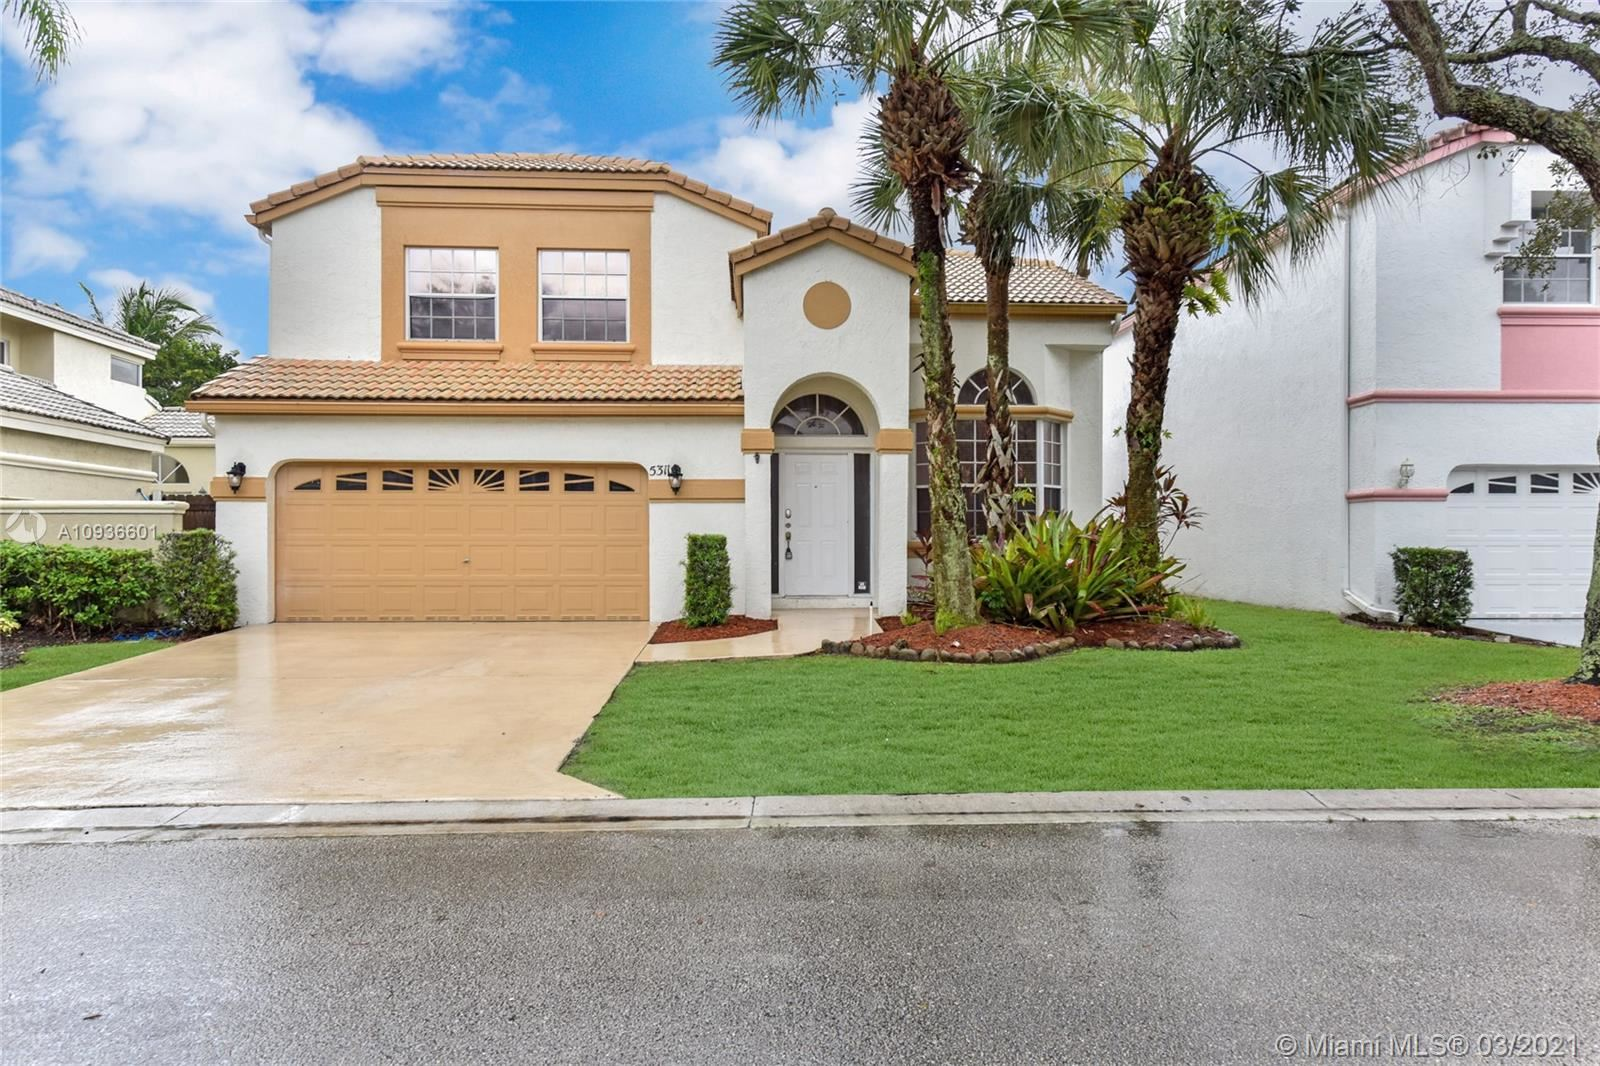 5311 NW 106th Dr, Coral Springs, FL 33076 - #: A10936601